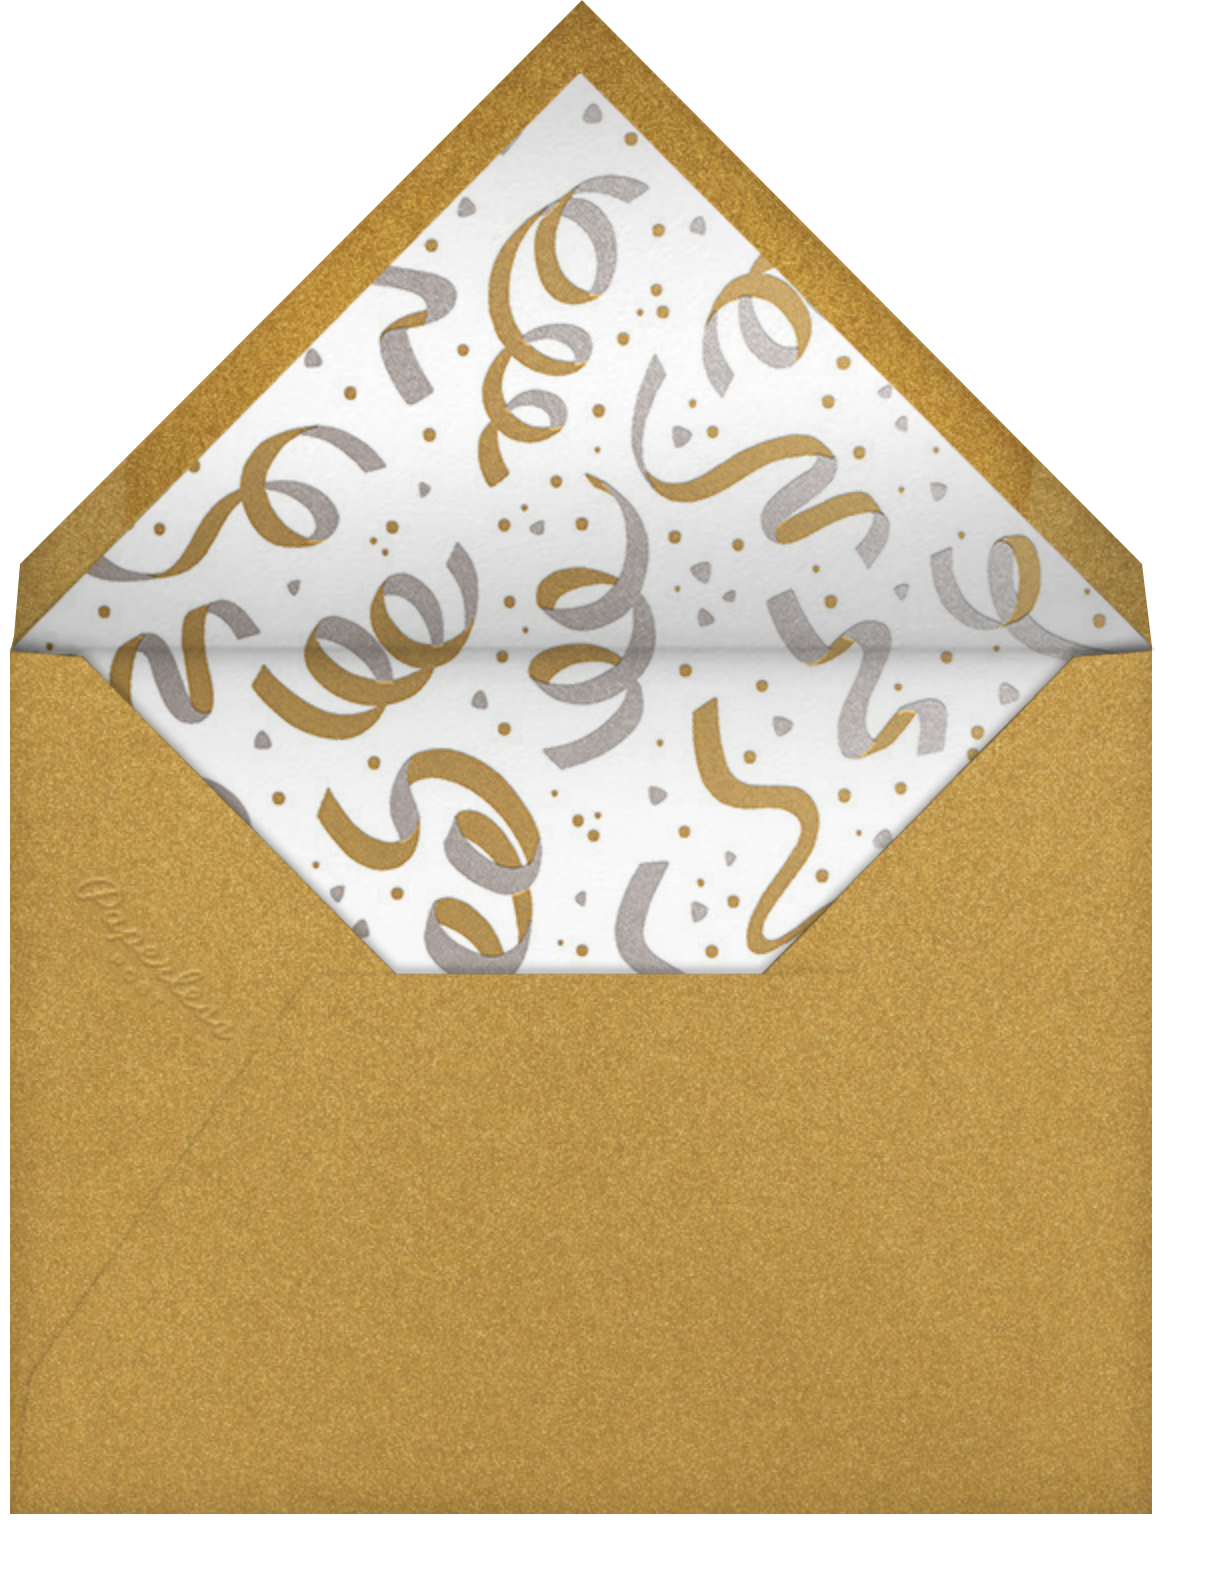 Confetti and Streamers - Gold/Silver - Paperless Post - Adult birthday - envelope back